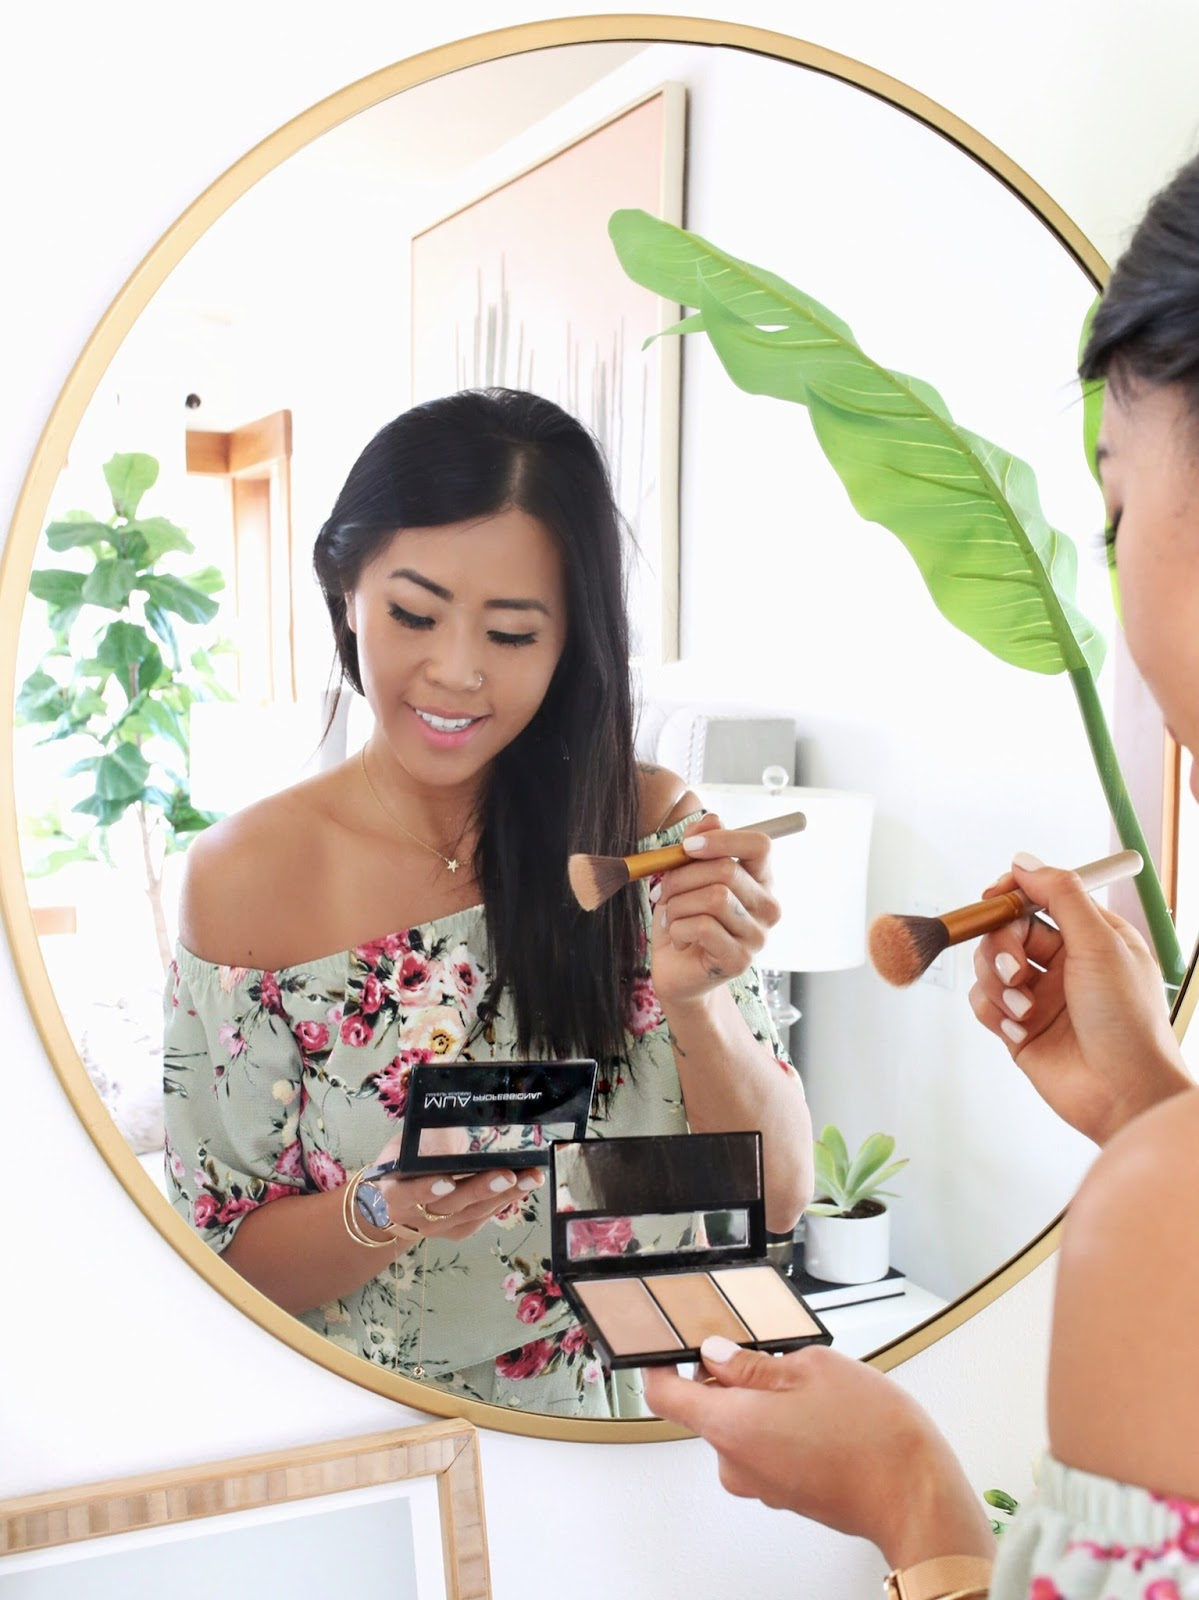 Makeup Academy MUA Affordable High-Quality Beauty Products at CVS Pharmacy